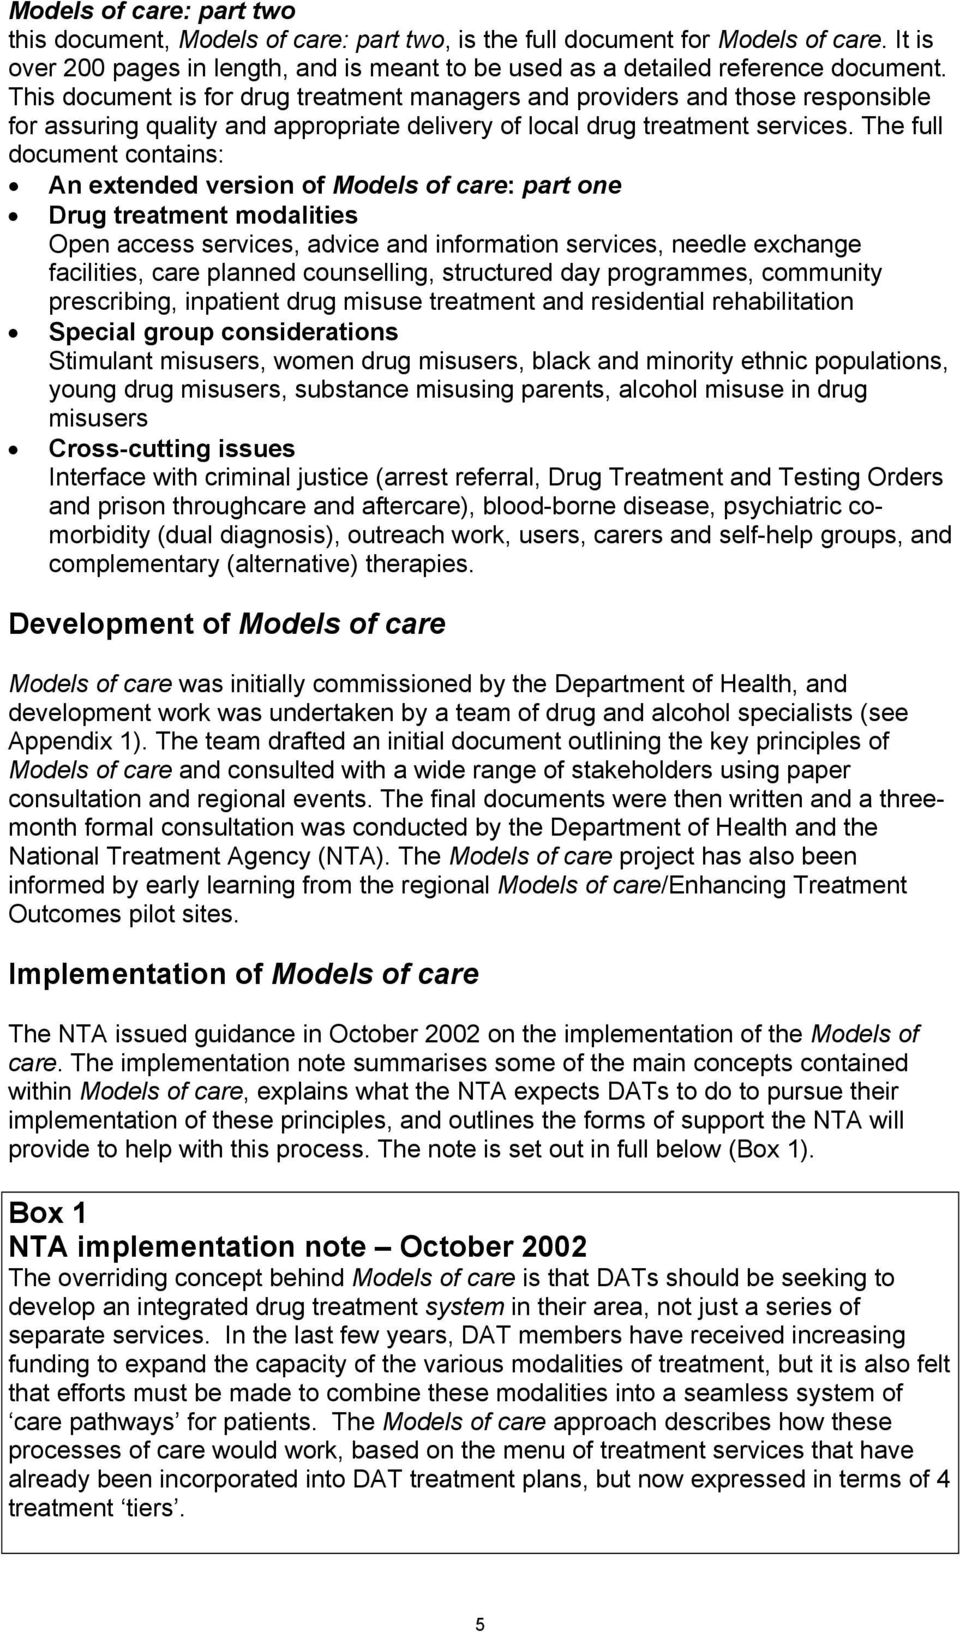 The full document contains: An extended version of Models of care: part one Drug treatment modalities Open access services, advice and information services, needle exchange facilities, care planned